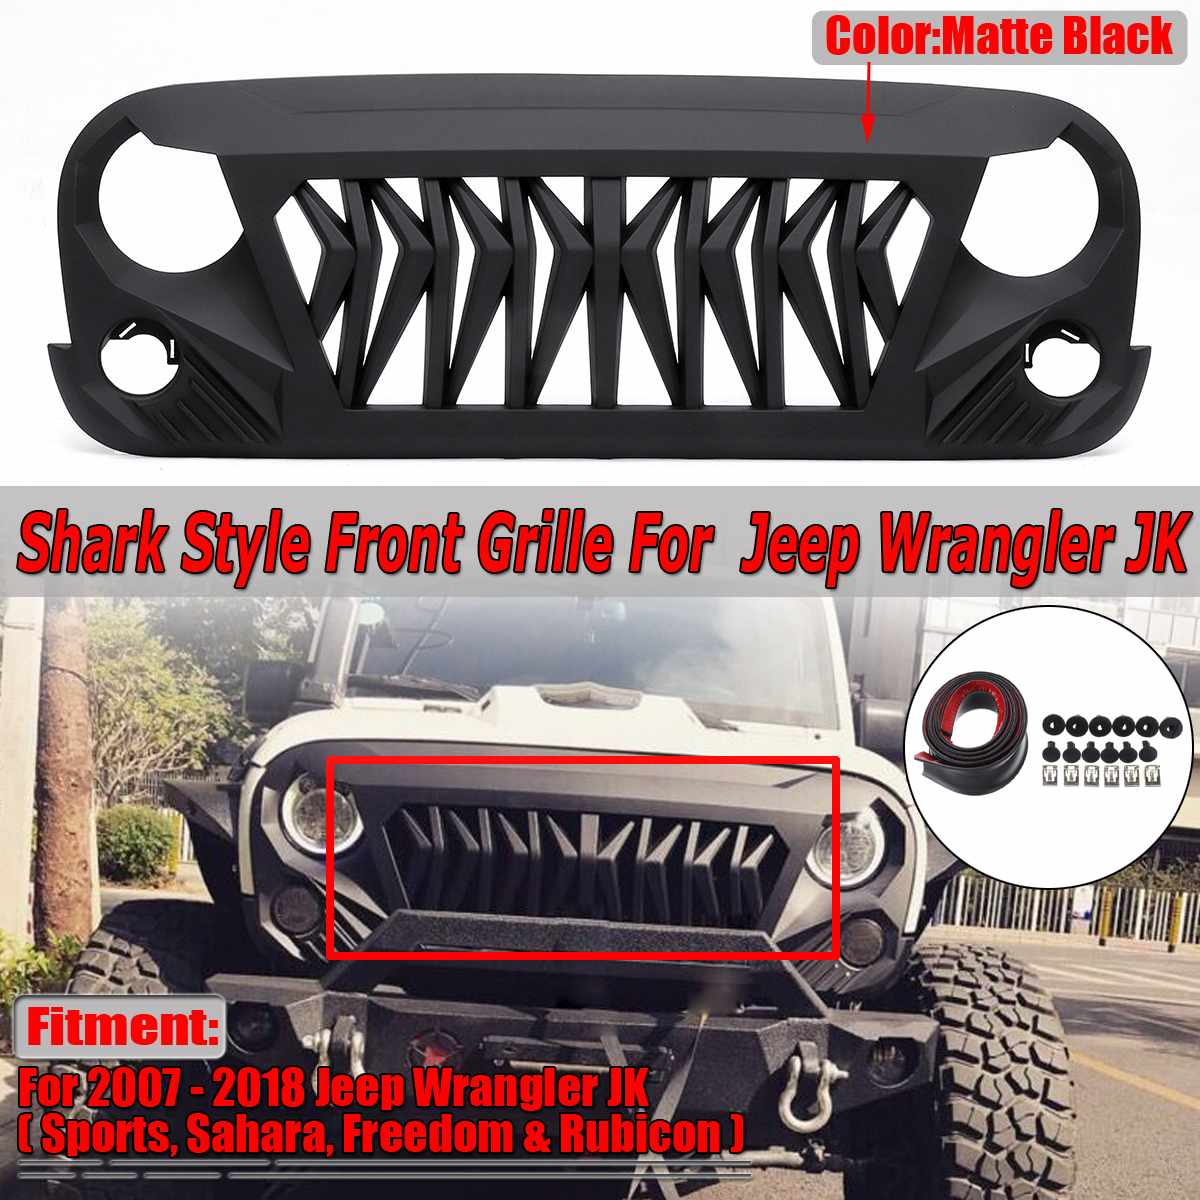 Racing Grille Cover Decoration Car Front Grill Grille For Jeep For Wrangler JK Rubicon Sahara Sports Freedom 2007-2018Racing Grille Cover Decoration Car Front Grill Grille For Jeep For Wrangler JK Rubicon Sahara Sports Freedom 2007-2018